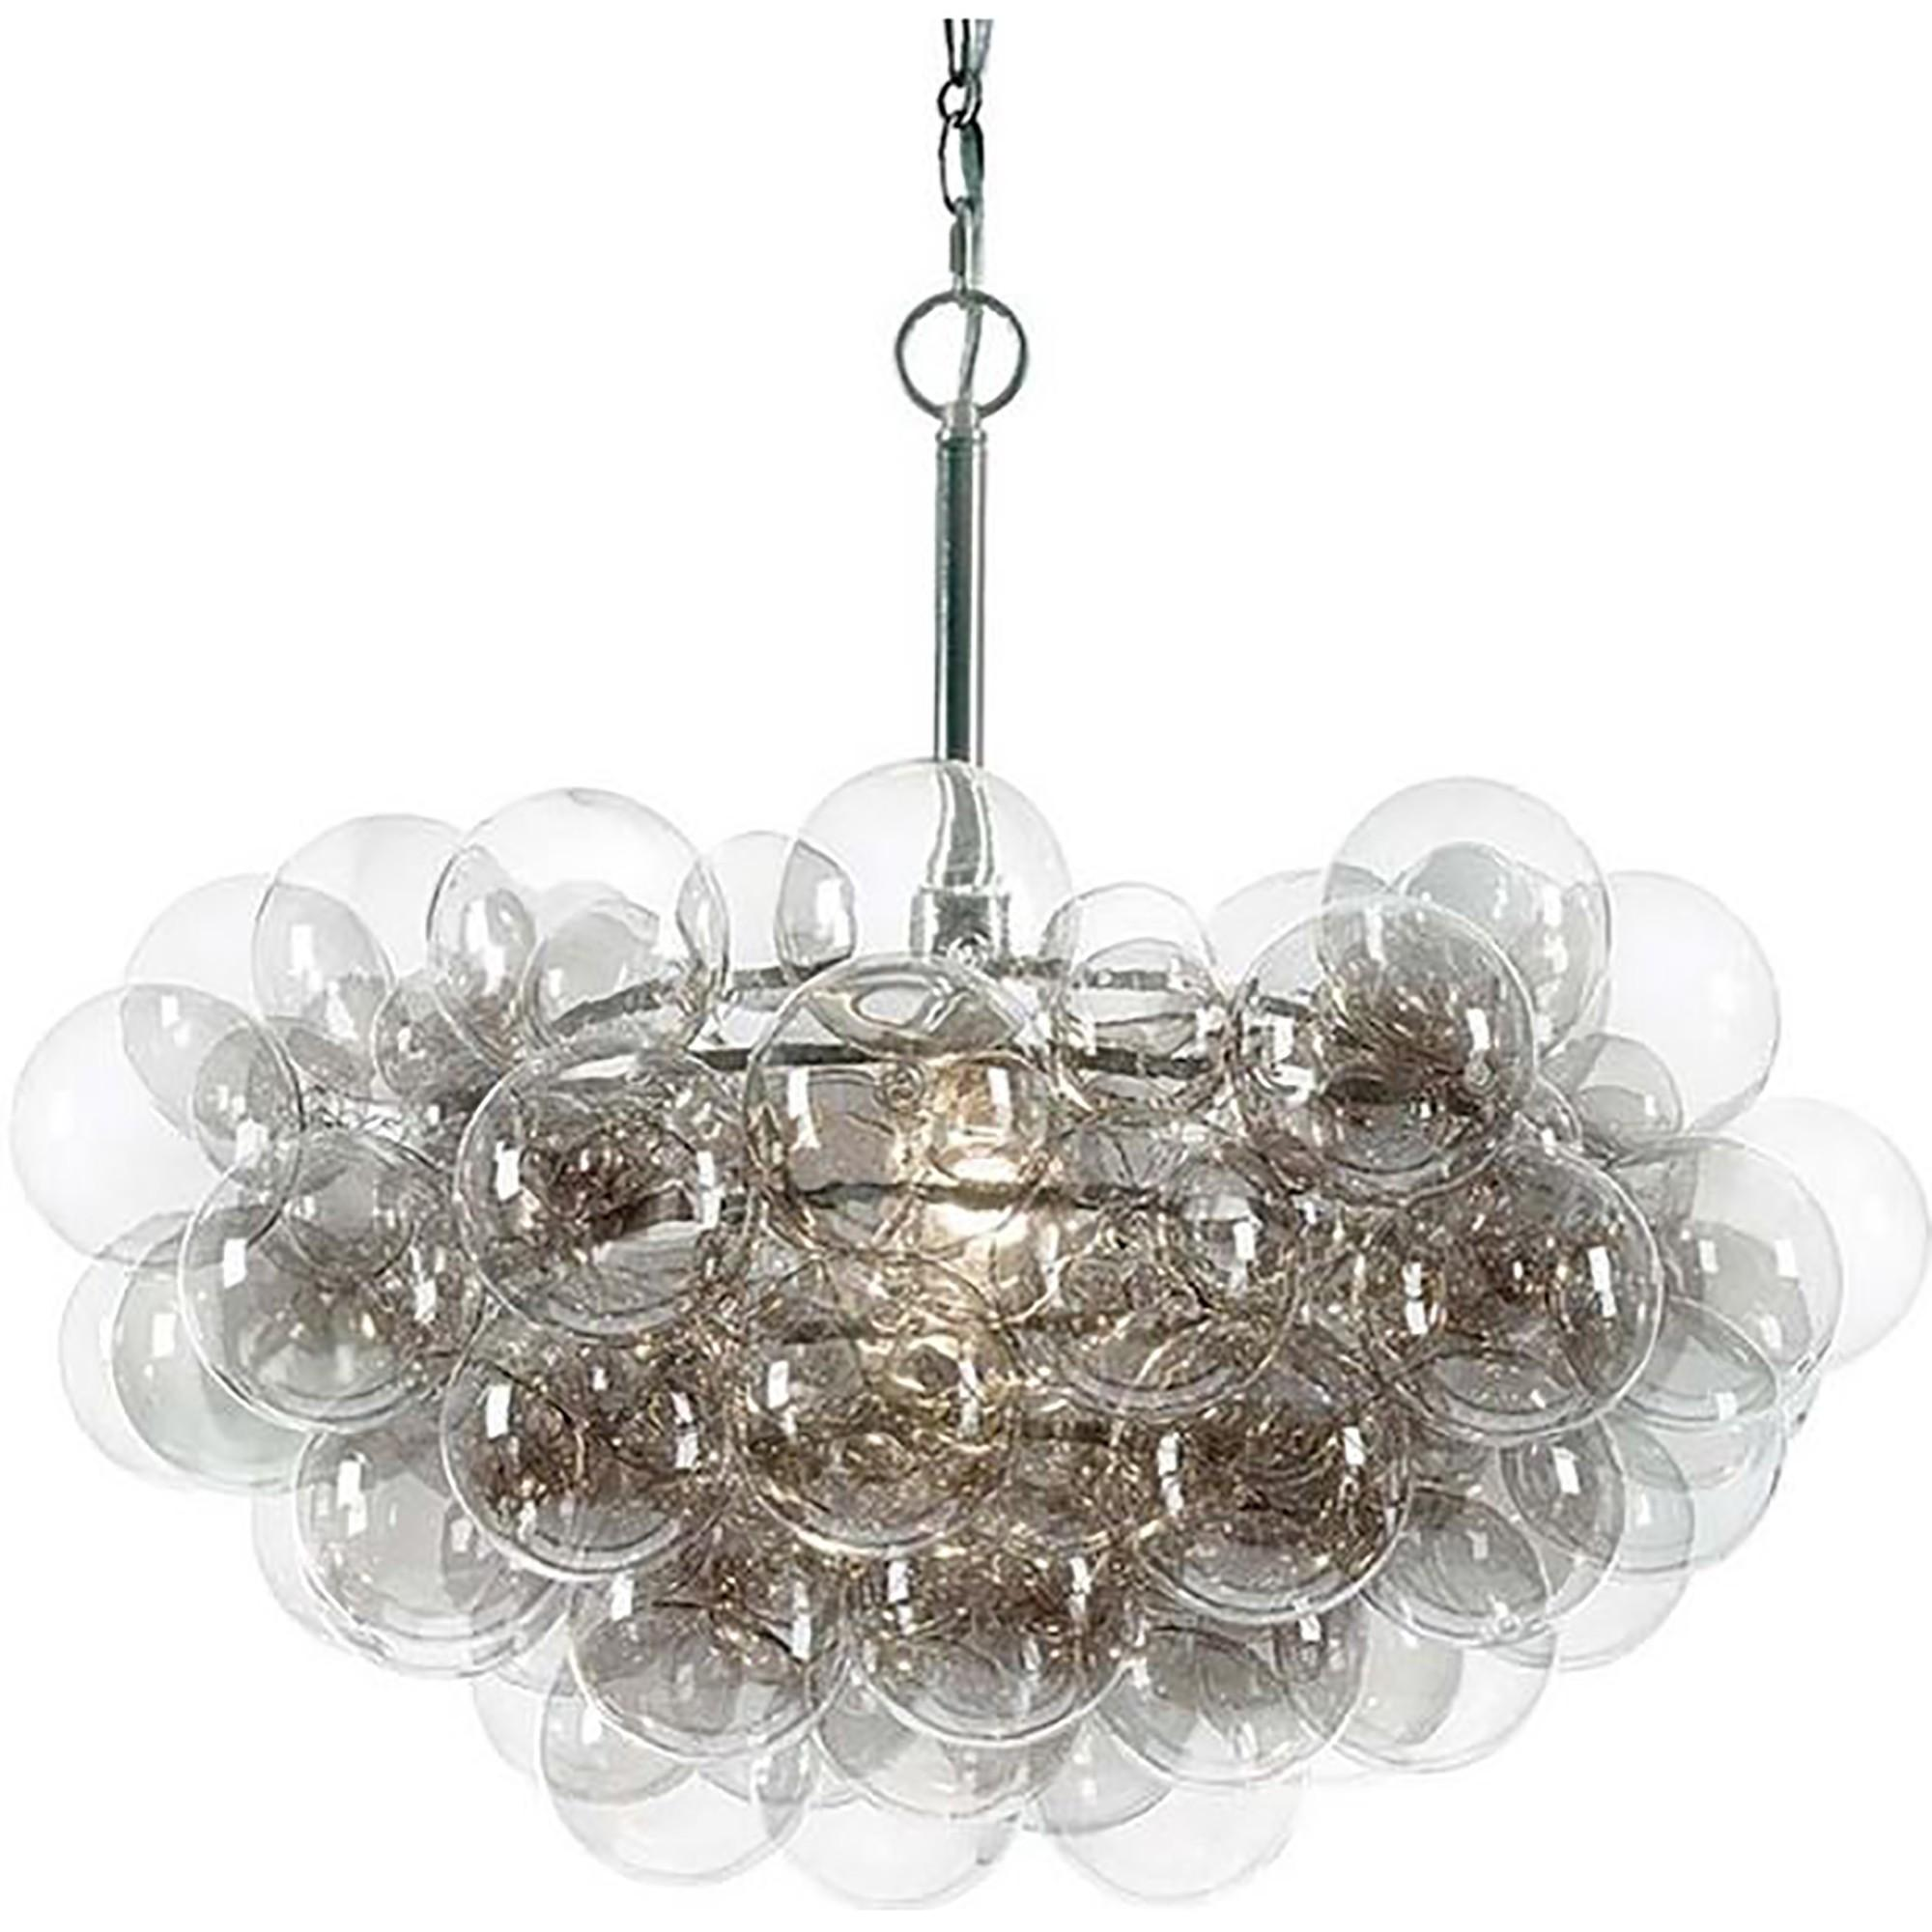 Bubbles Chandelier Clear Chandeliers Lighting